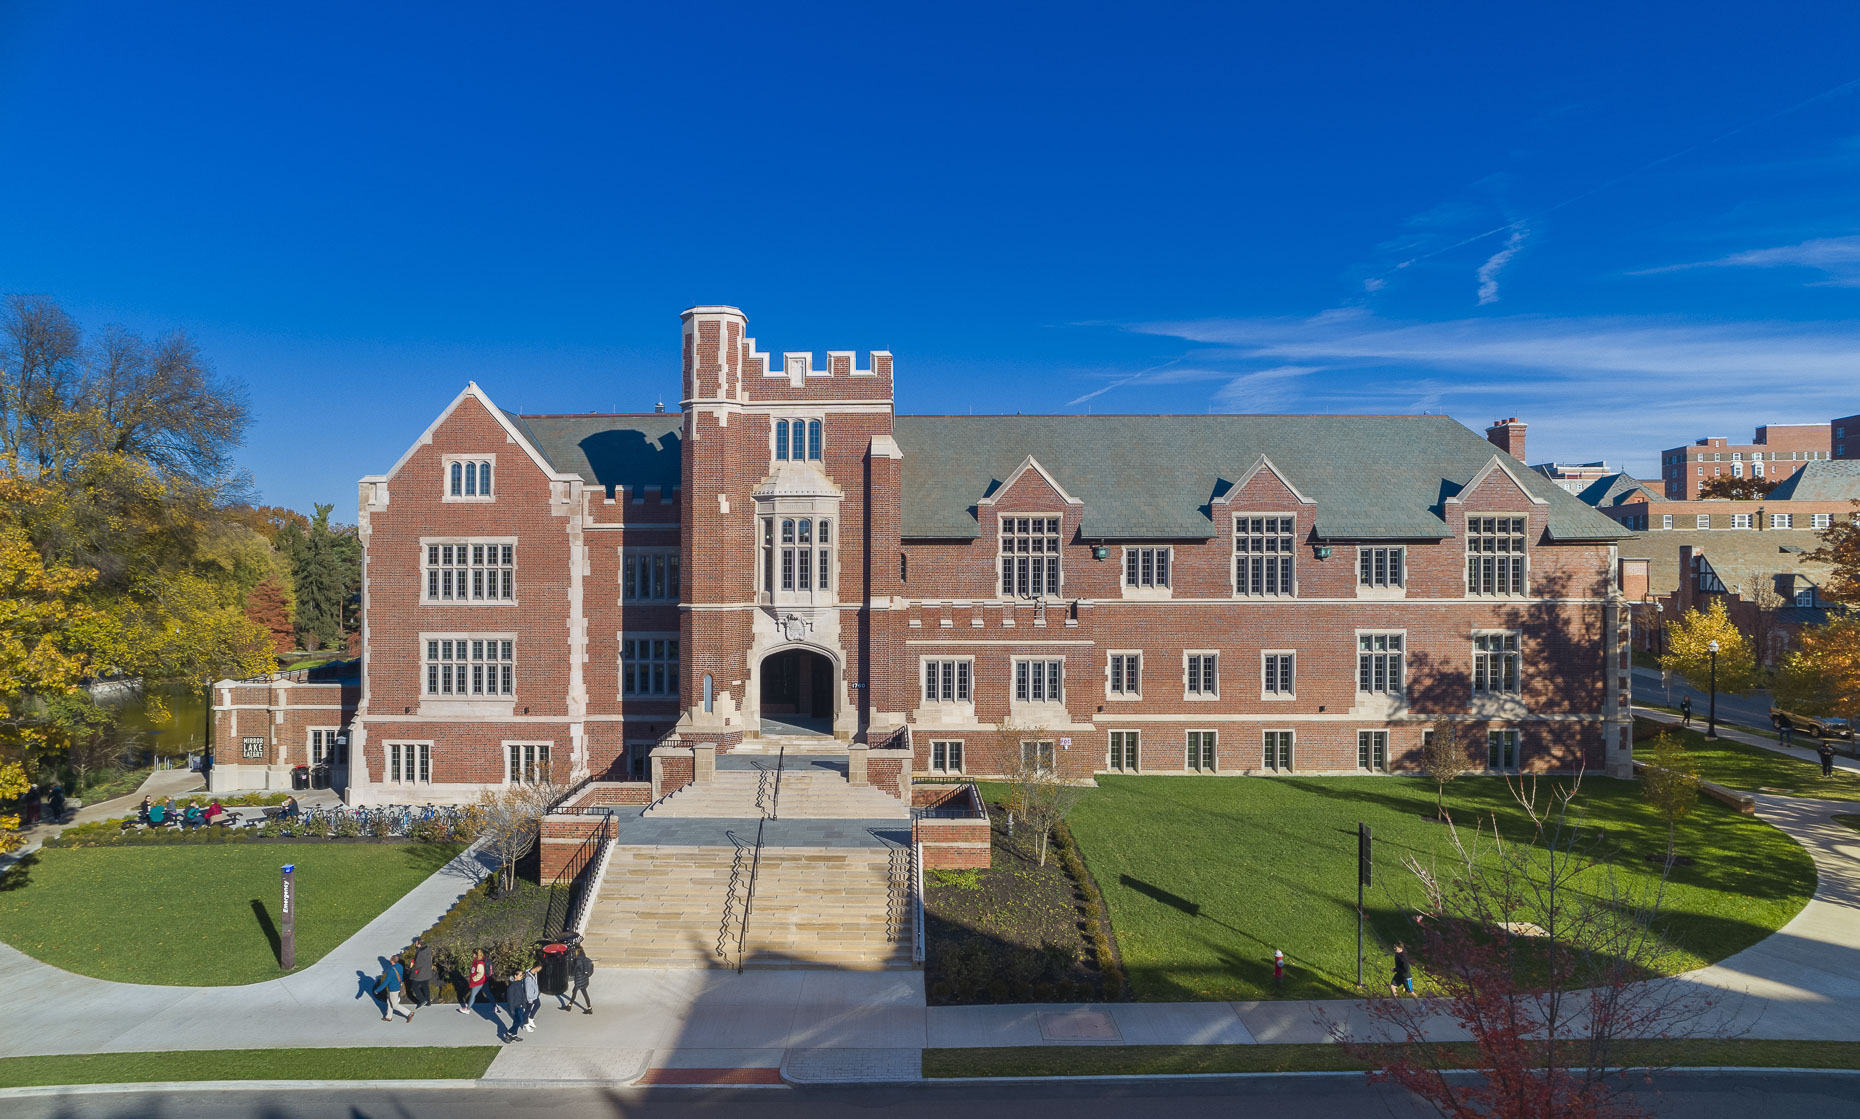 OSU Pomerene Hall Renovation by Acock Associates Architects photographed by Lauren K Davis based in Columbus, Ohio